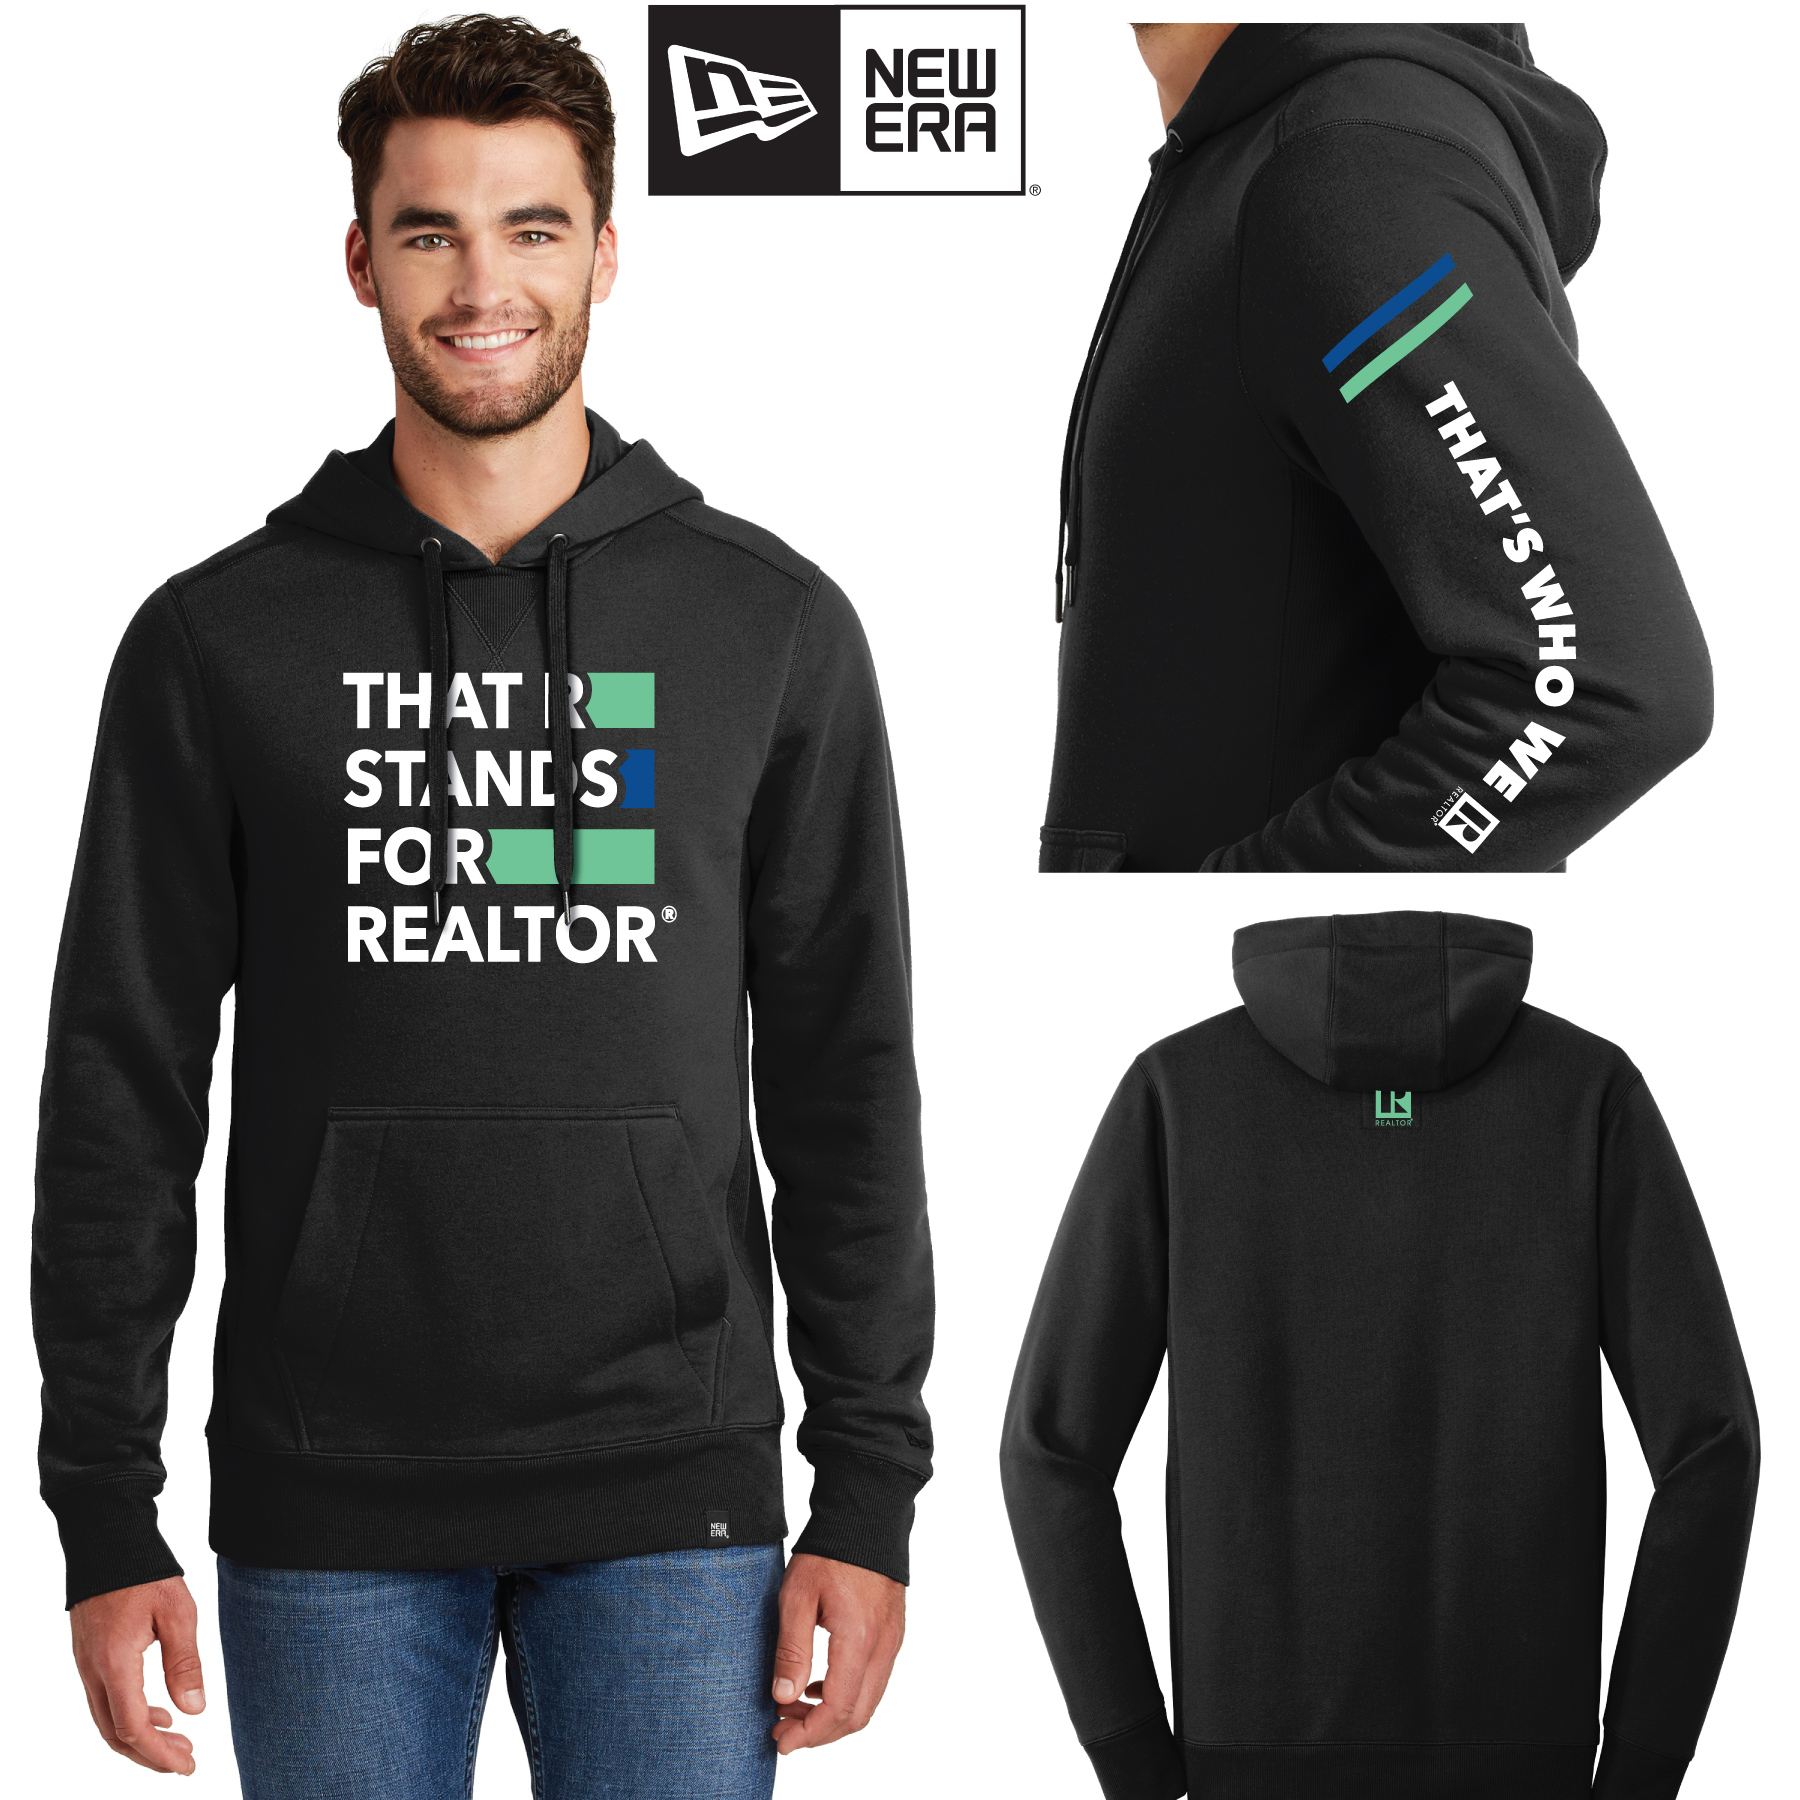 """That R Stands for REALTOR®"" New Era® French Terry Hoodie Sweatshirt twwr,ThatsWhoWeR,That's,TWWR,ThatWho,That'sWho,Twwr,Thats,Whos,We,Ares,Hoodies,TWWR,Hoods,Sweats,Shirts,Sweatshirts,Necks"